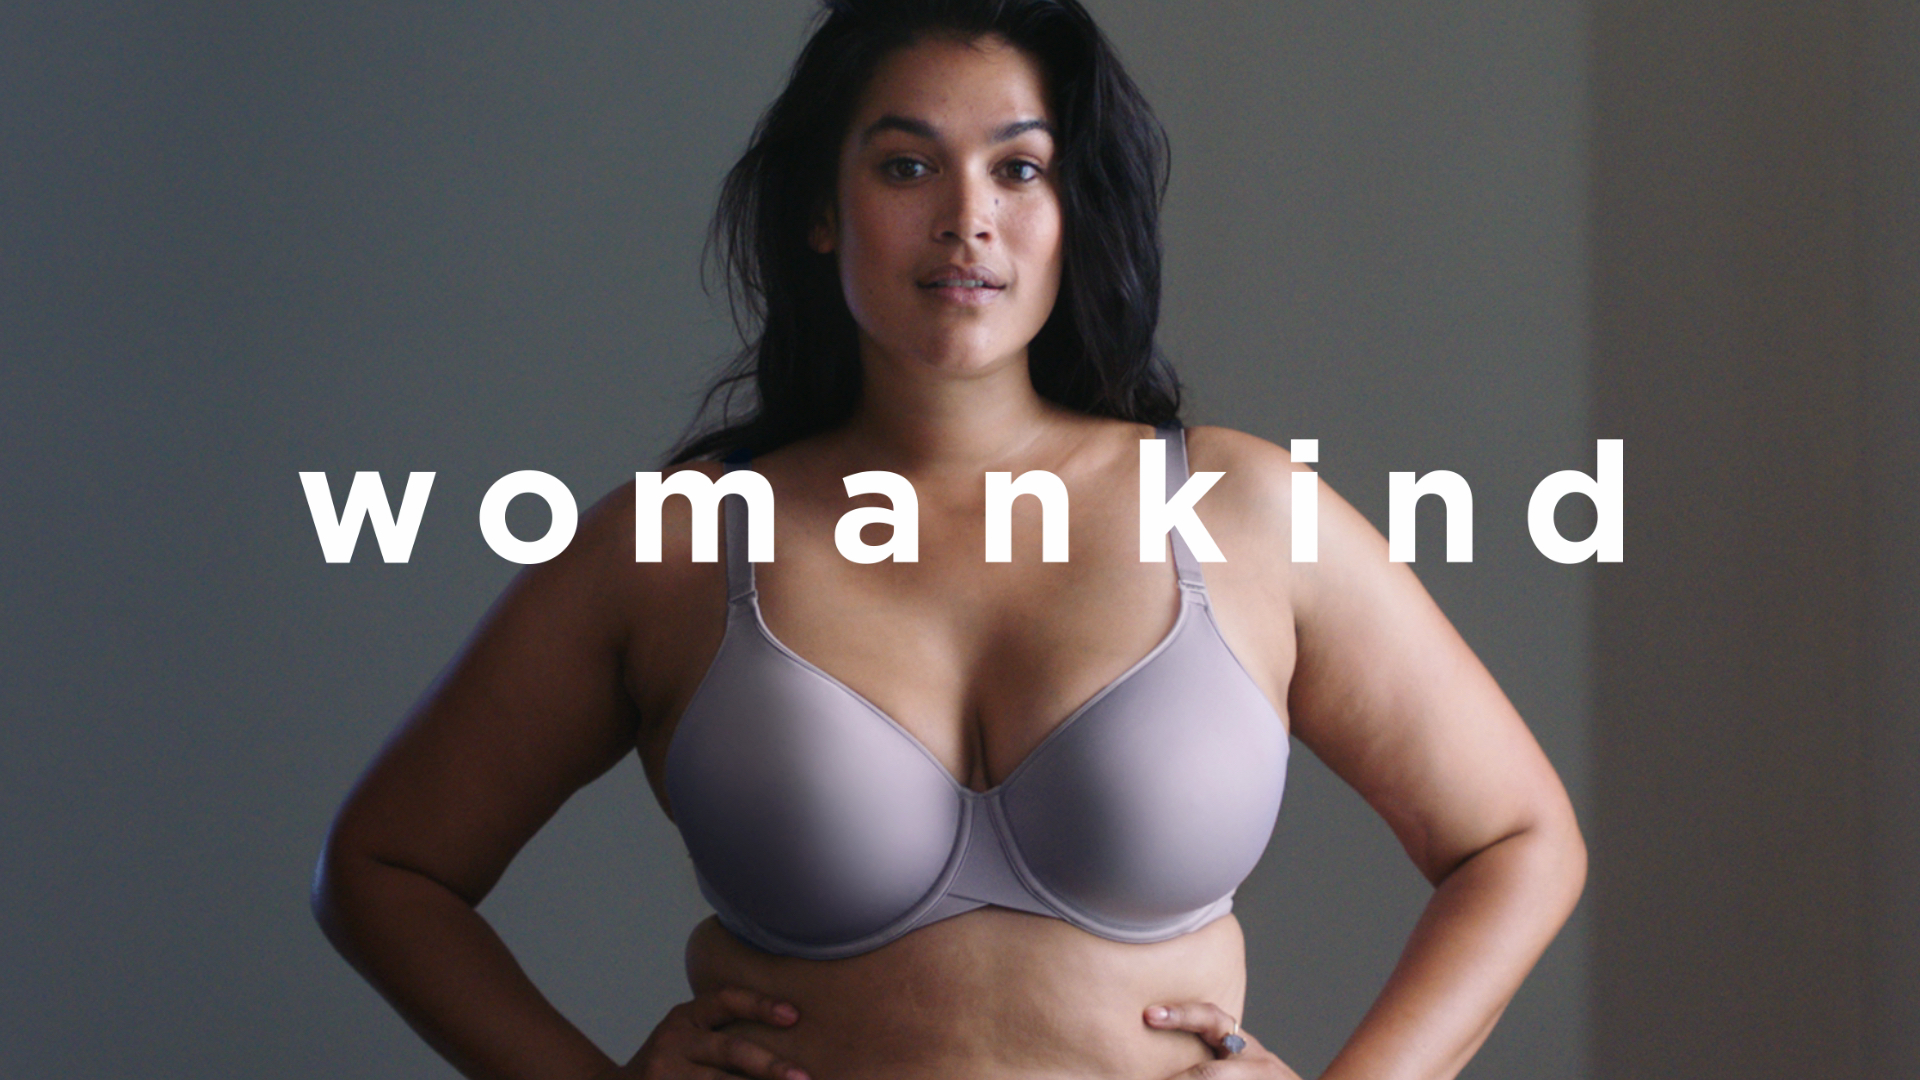 Womankind Webby-Winning Campaign